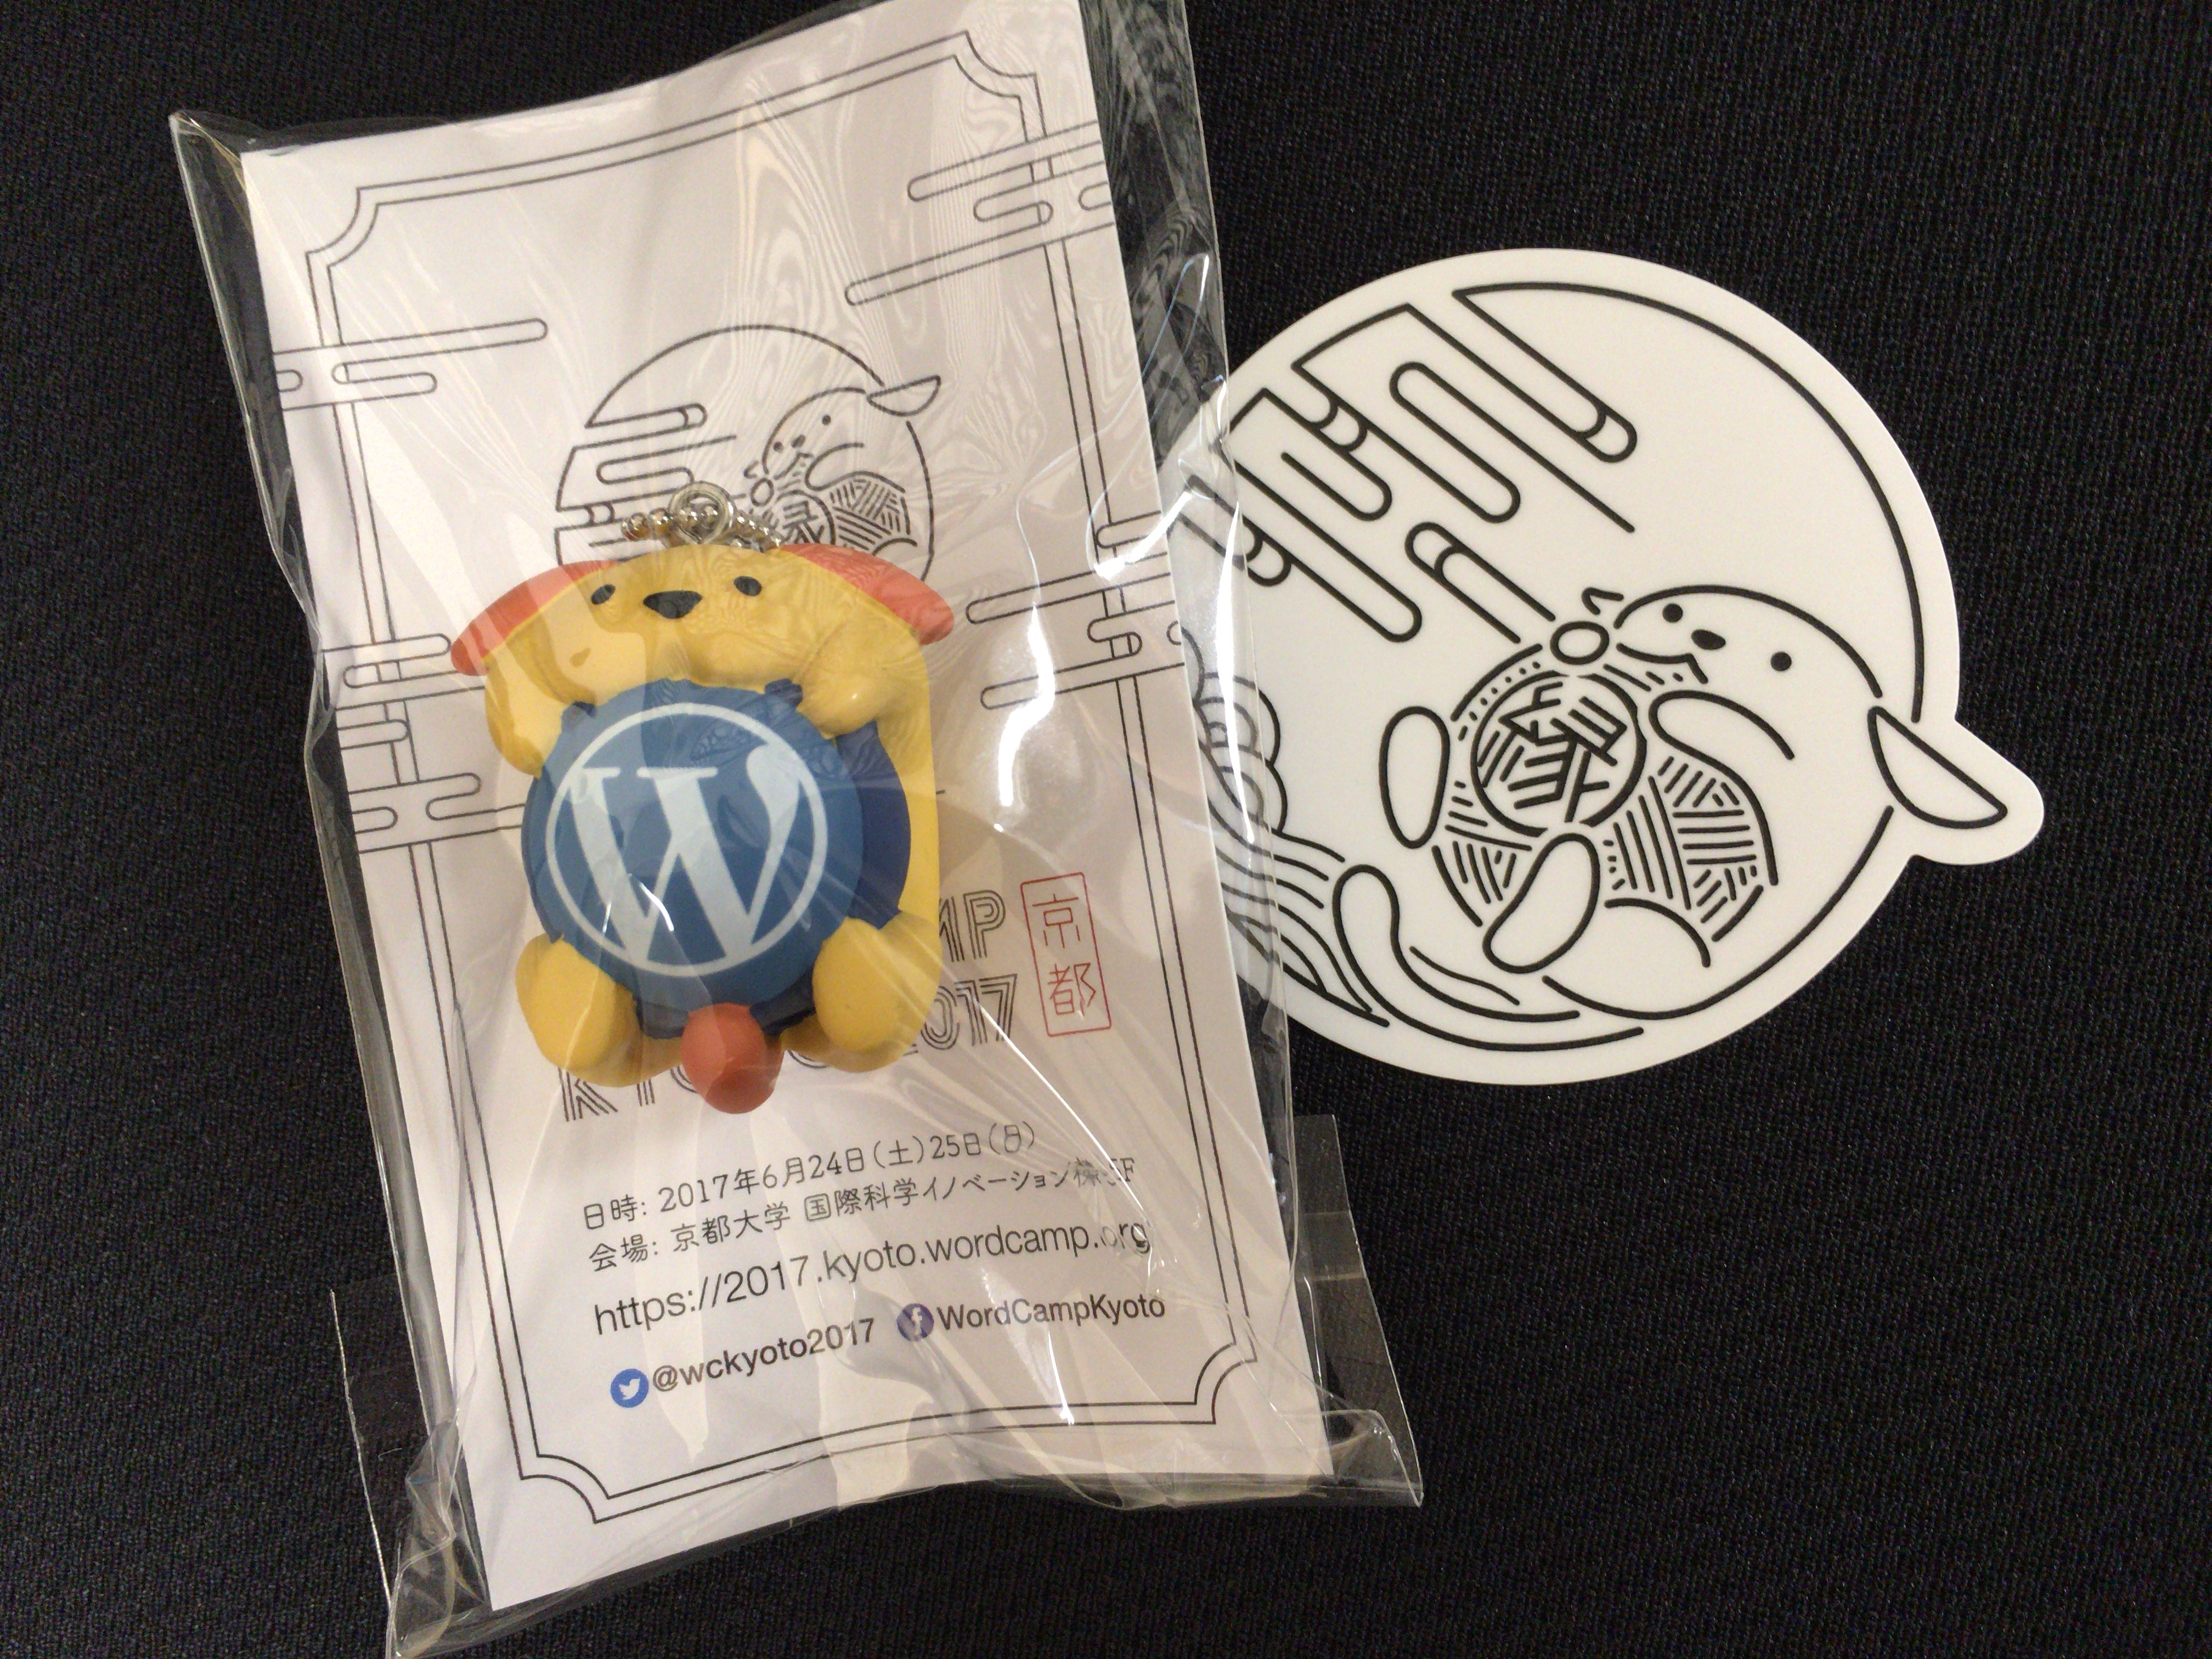 WordCamp Kyoto 2017 swag: Wapuu Keychain & sticker